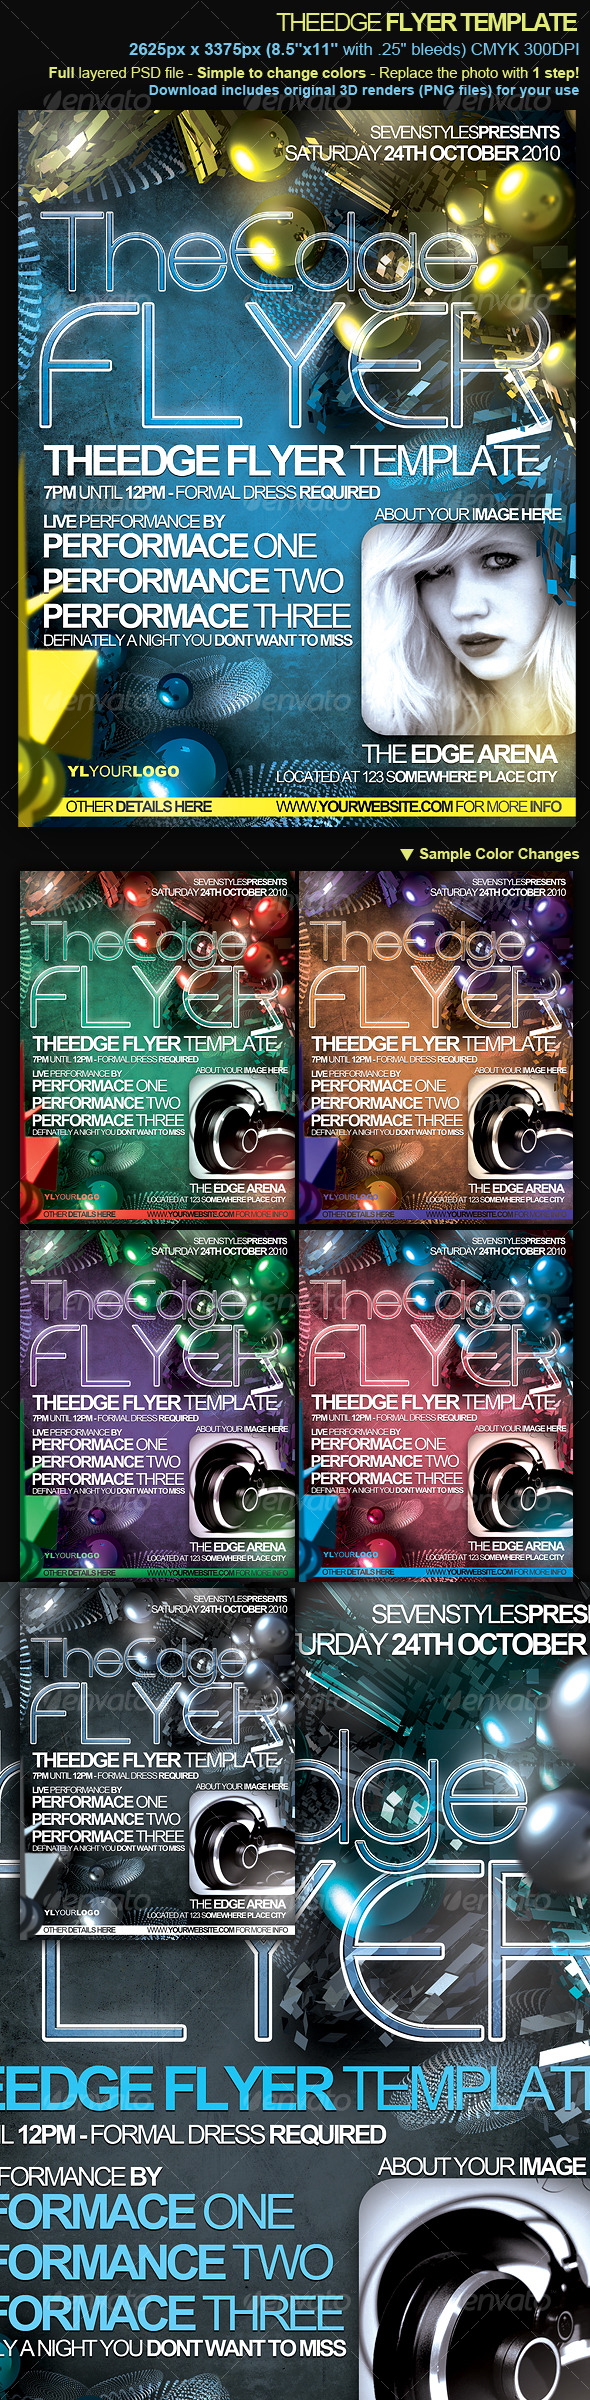 TheEdge Flyer/Poster Template - Clubs & Parties Events